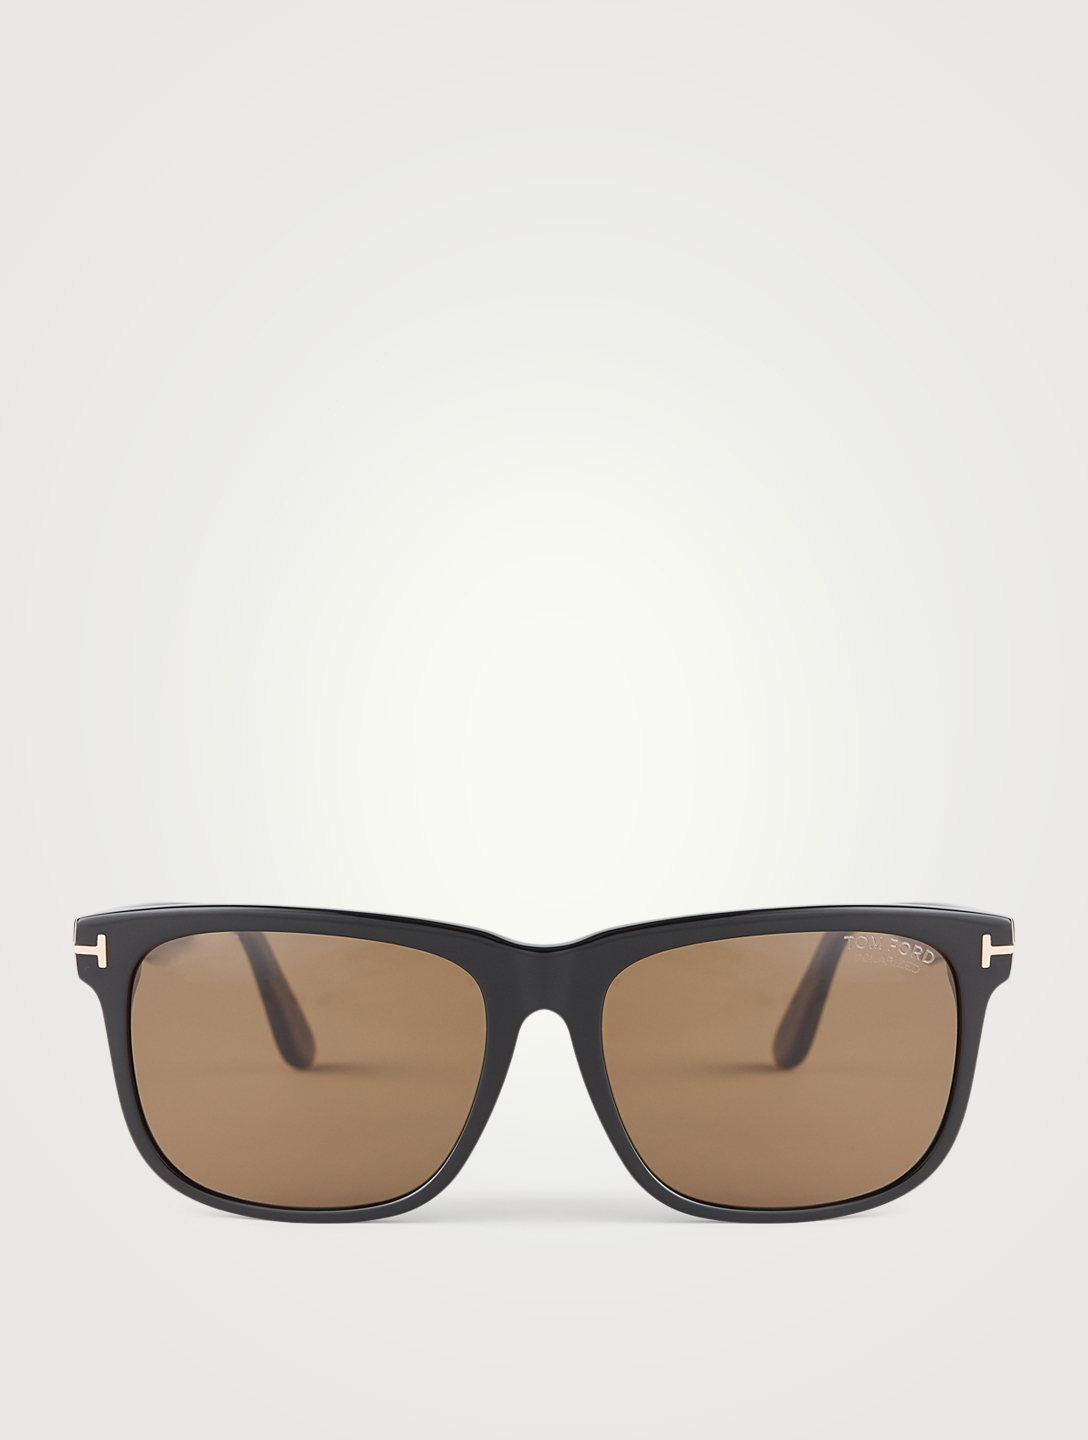 TOM FORD Stephenson Square Sunglasses Men's Black